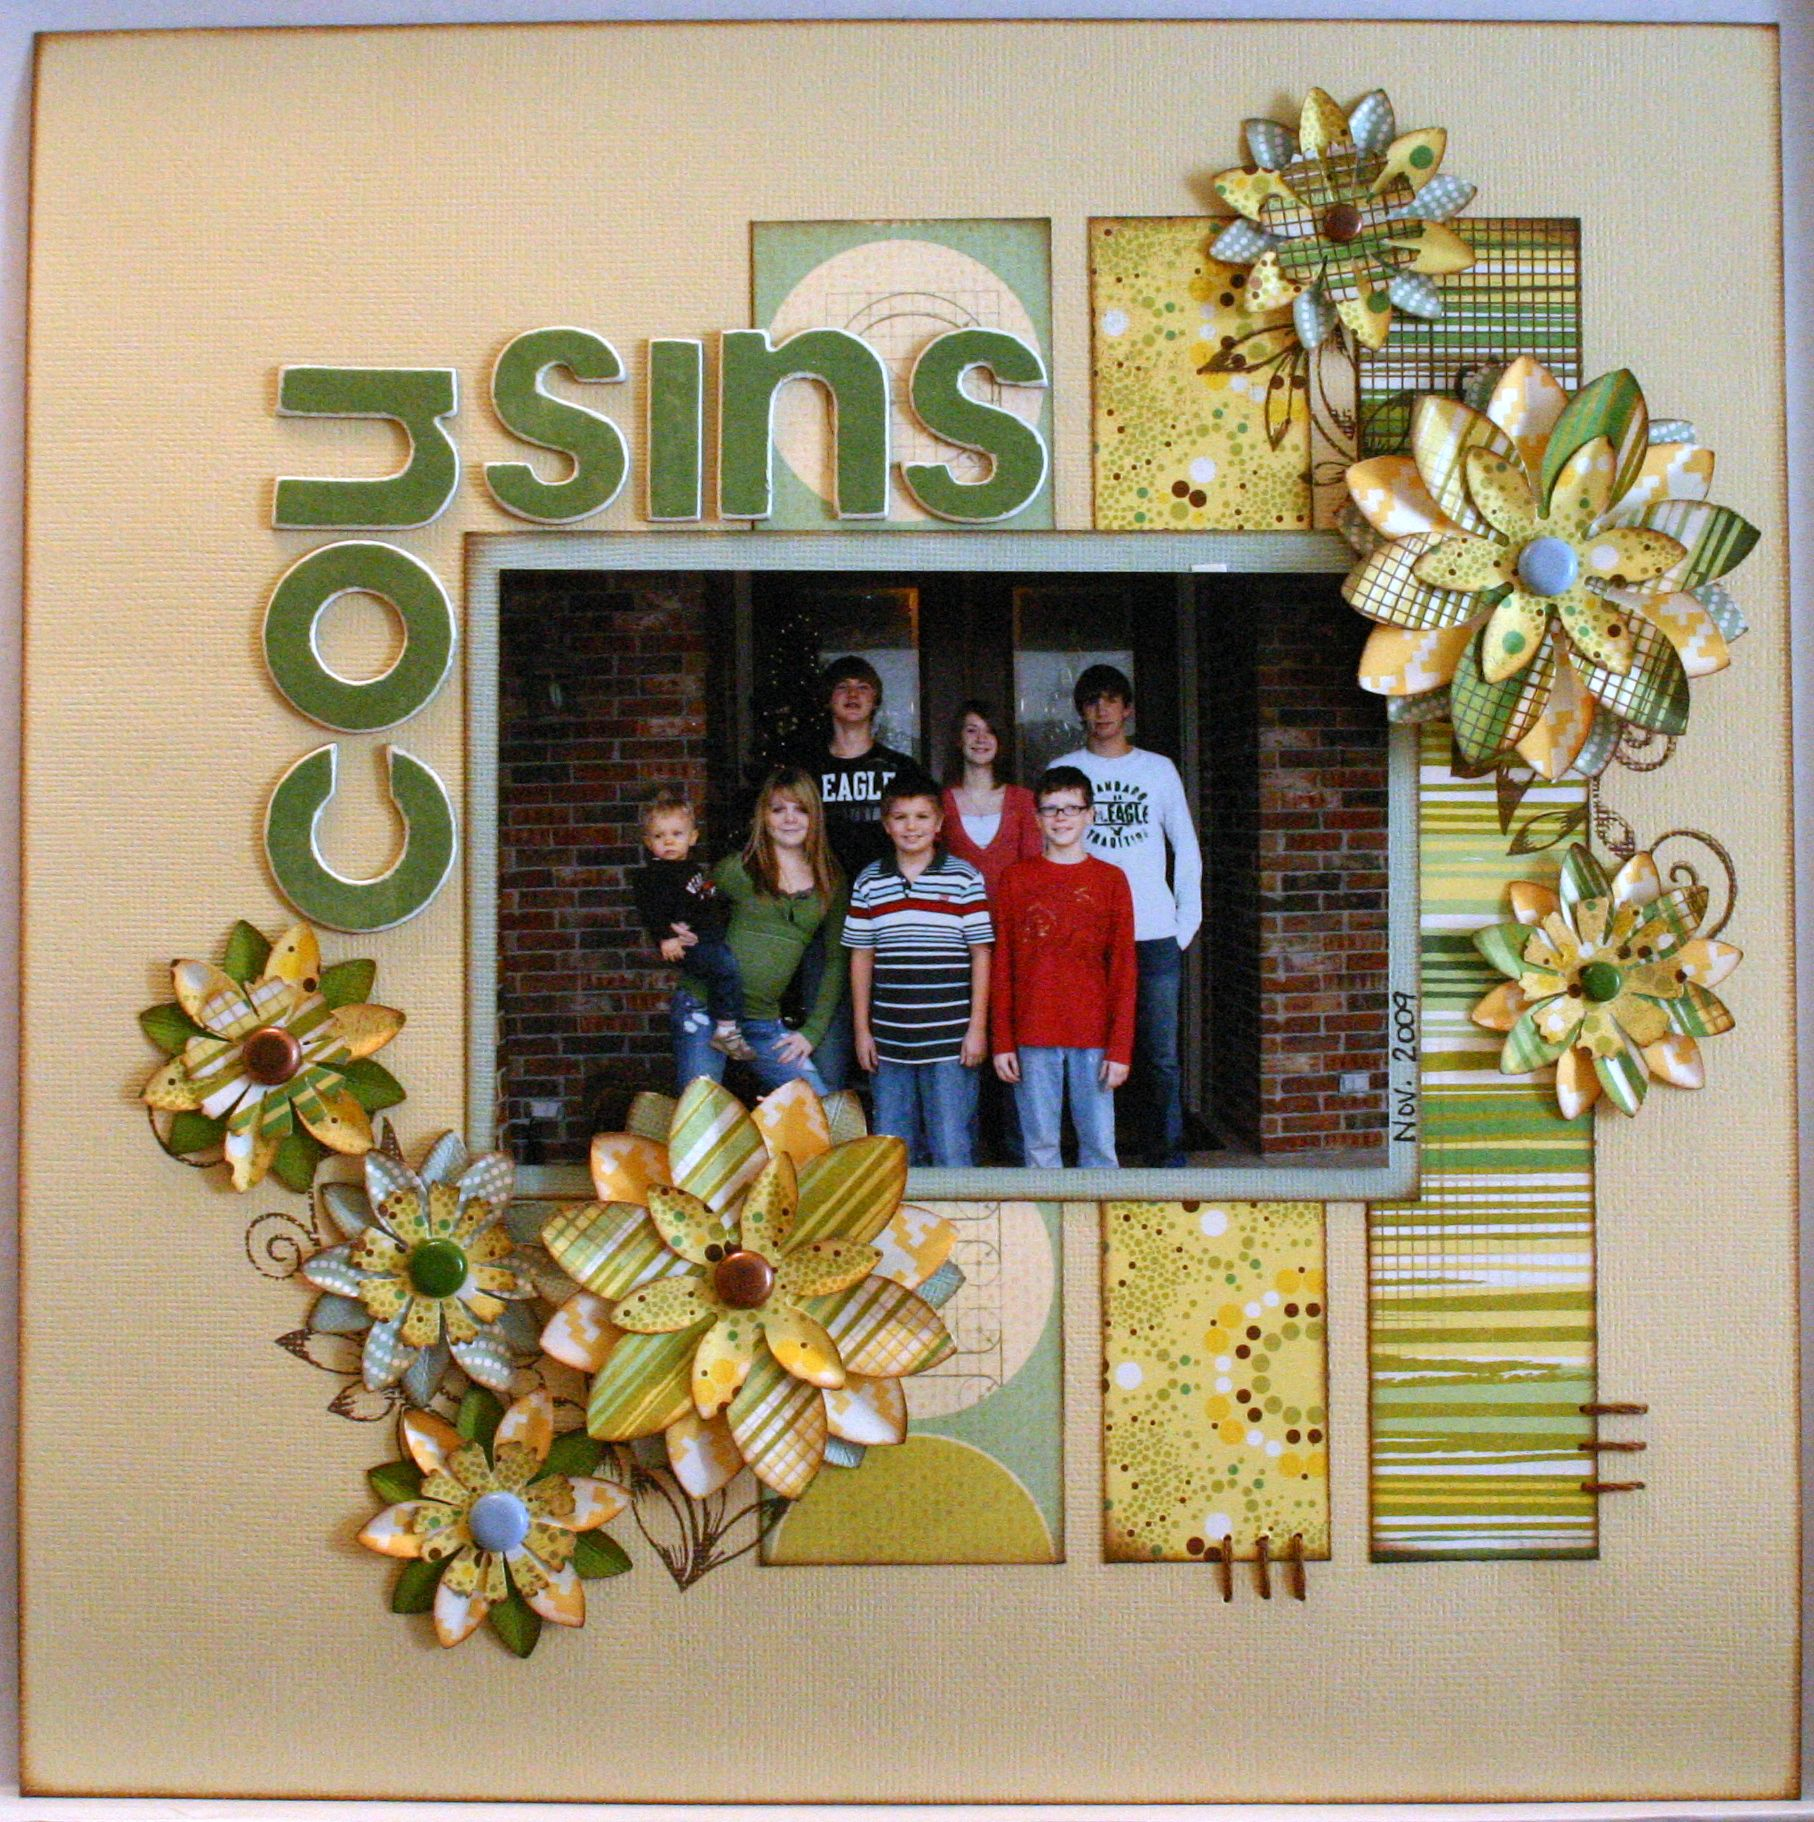 Scrapbook ideas with flowers - Cousins Scrapbook Com I Like The Paper Strips And Paper Flowers